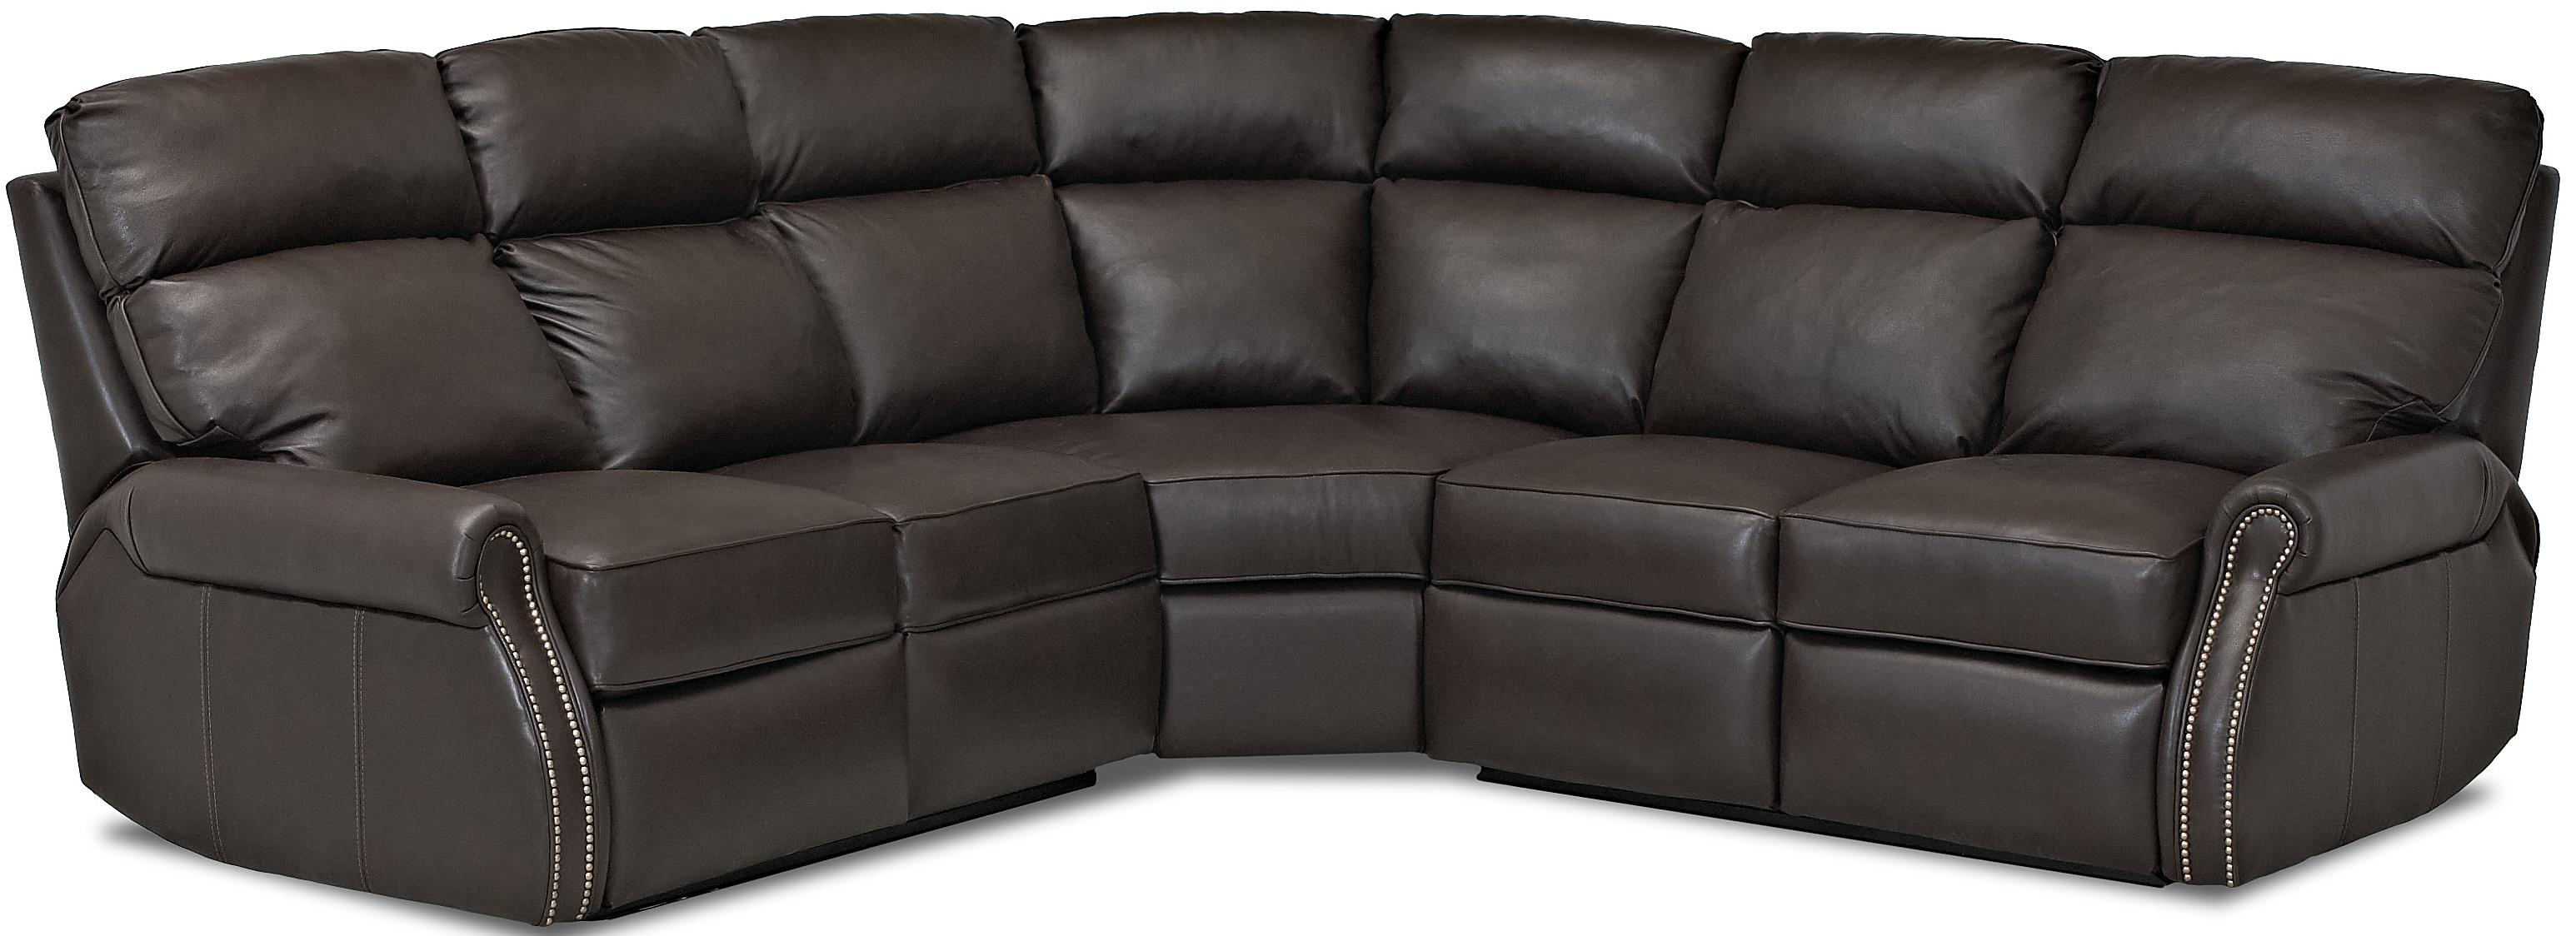 Jackie II Reclining Sectional Sofa by Comfort Design at Stuckey Furniture